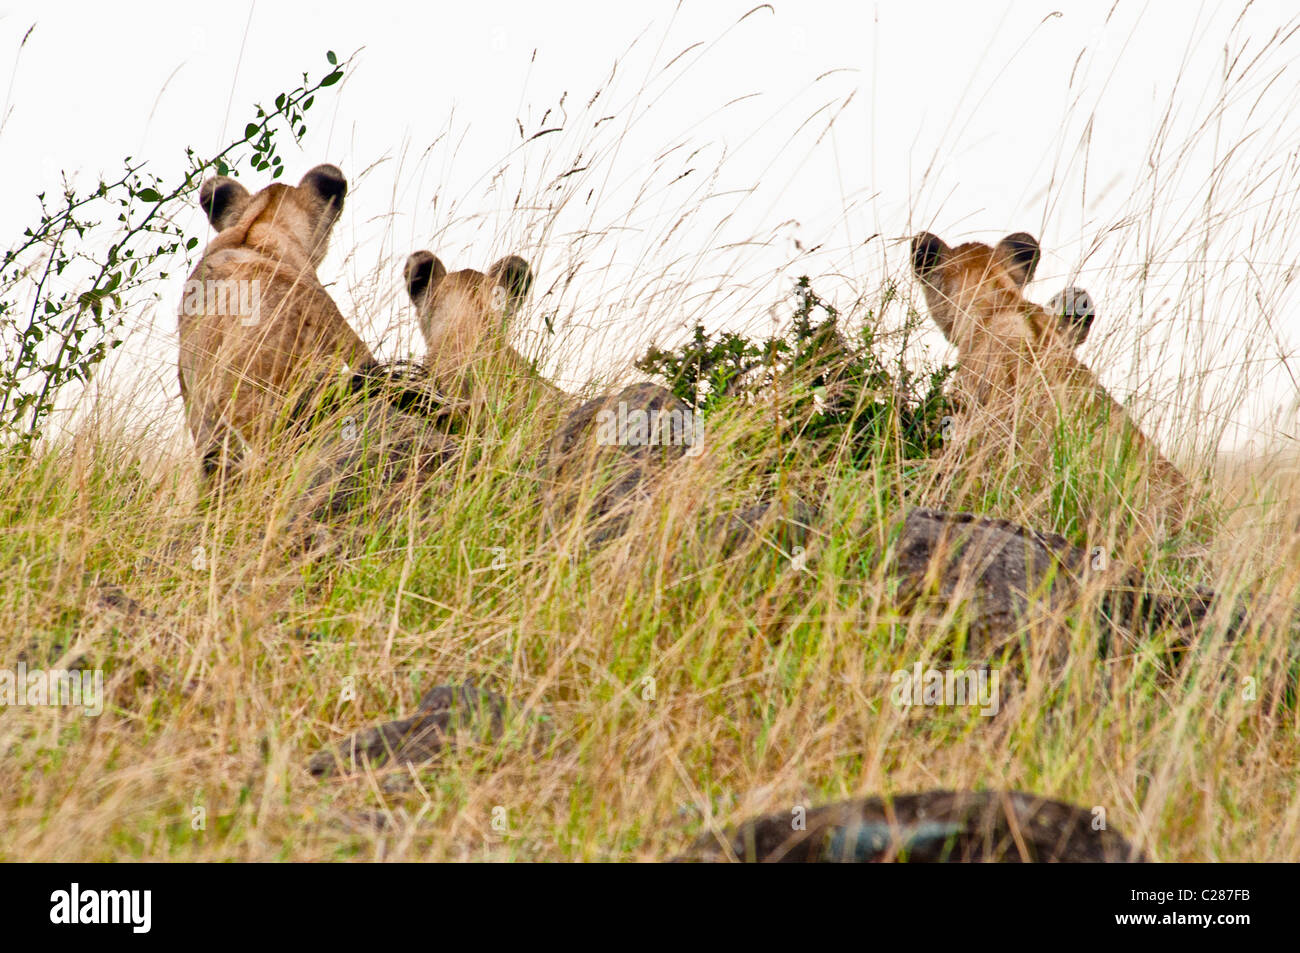 Rear View of Four Lion Cubs, Panthera leo, Masai Mara National Reserve, Kenya, Africa - Stock Image